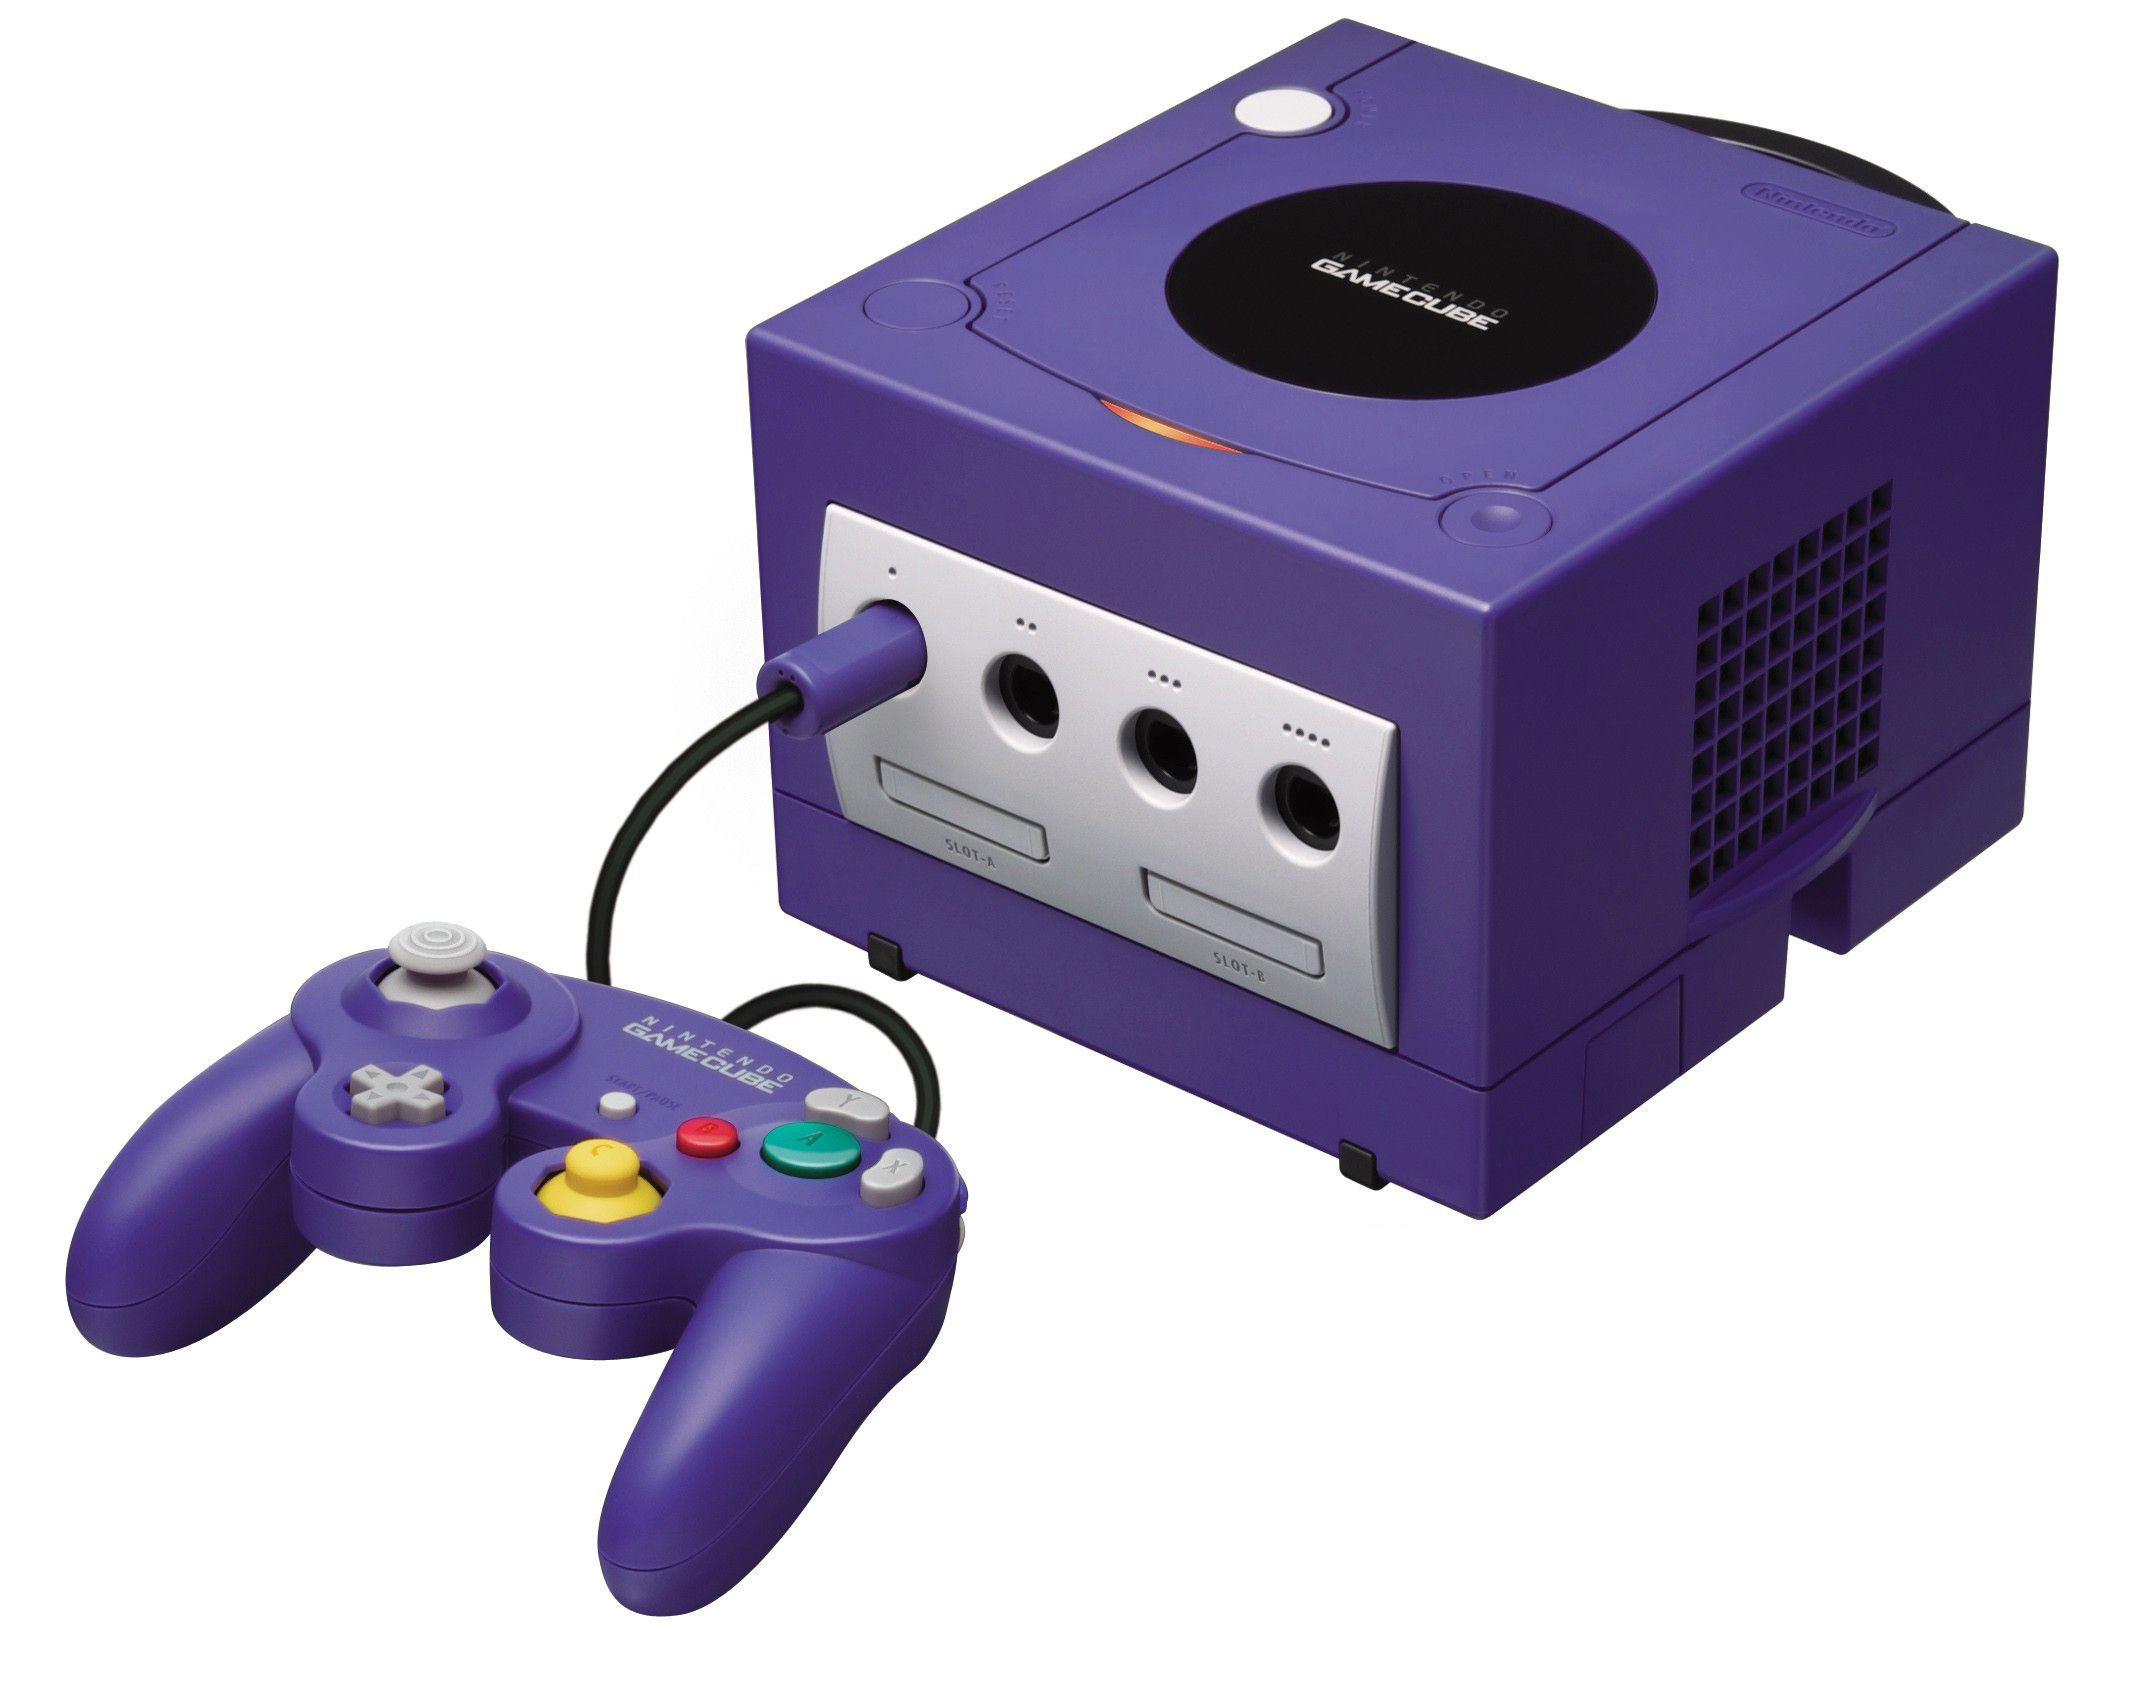 Gamecube Turns Ten Years Old Today Gamecube Games Gamecube Game Console